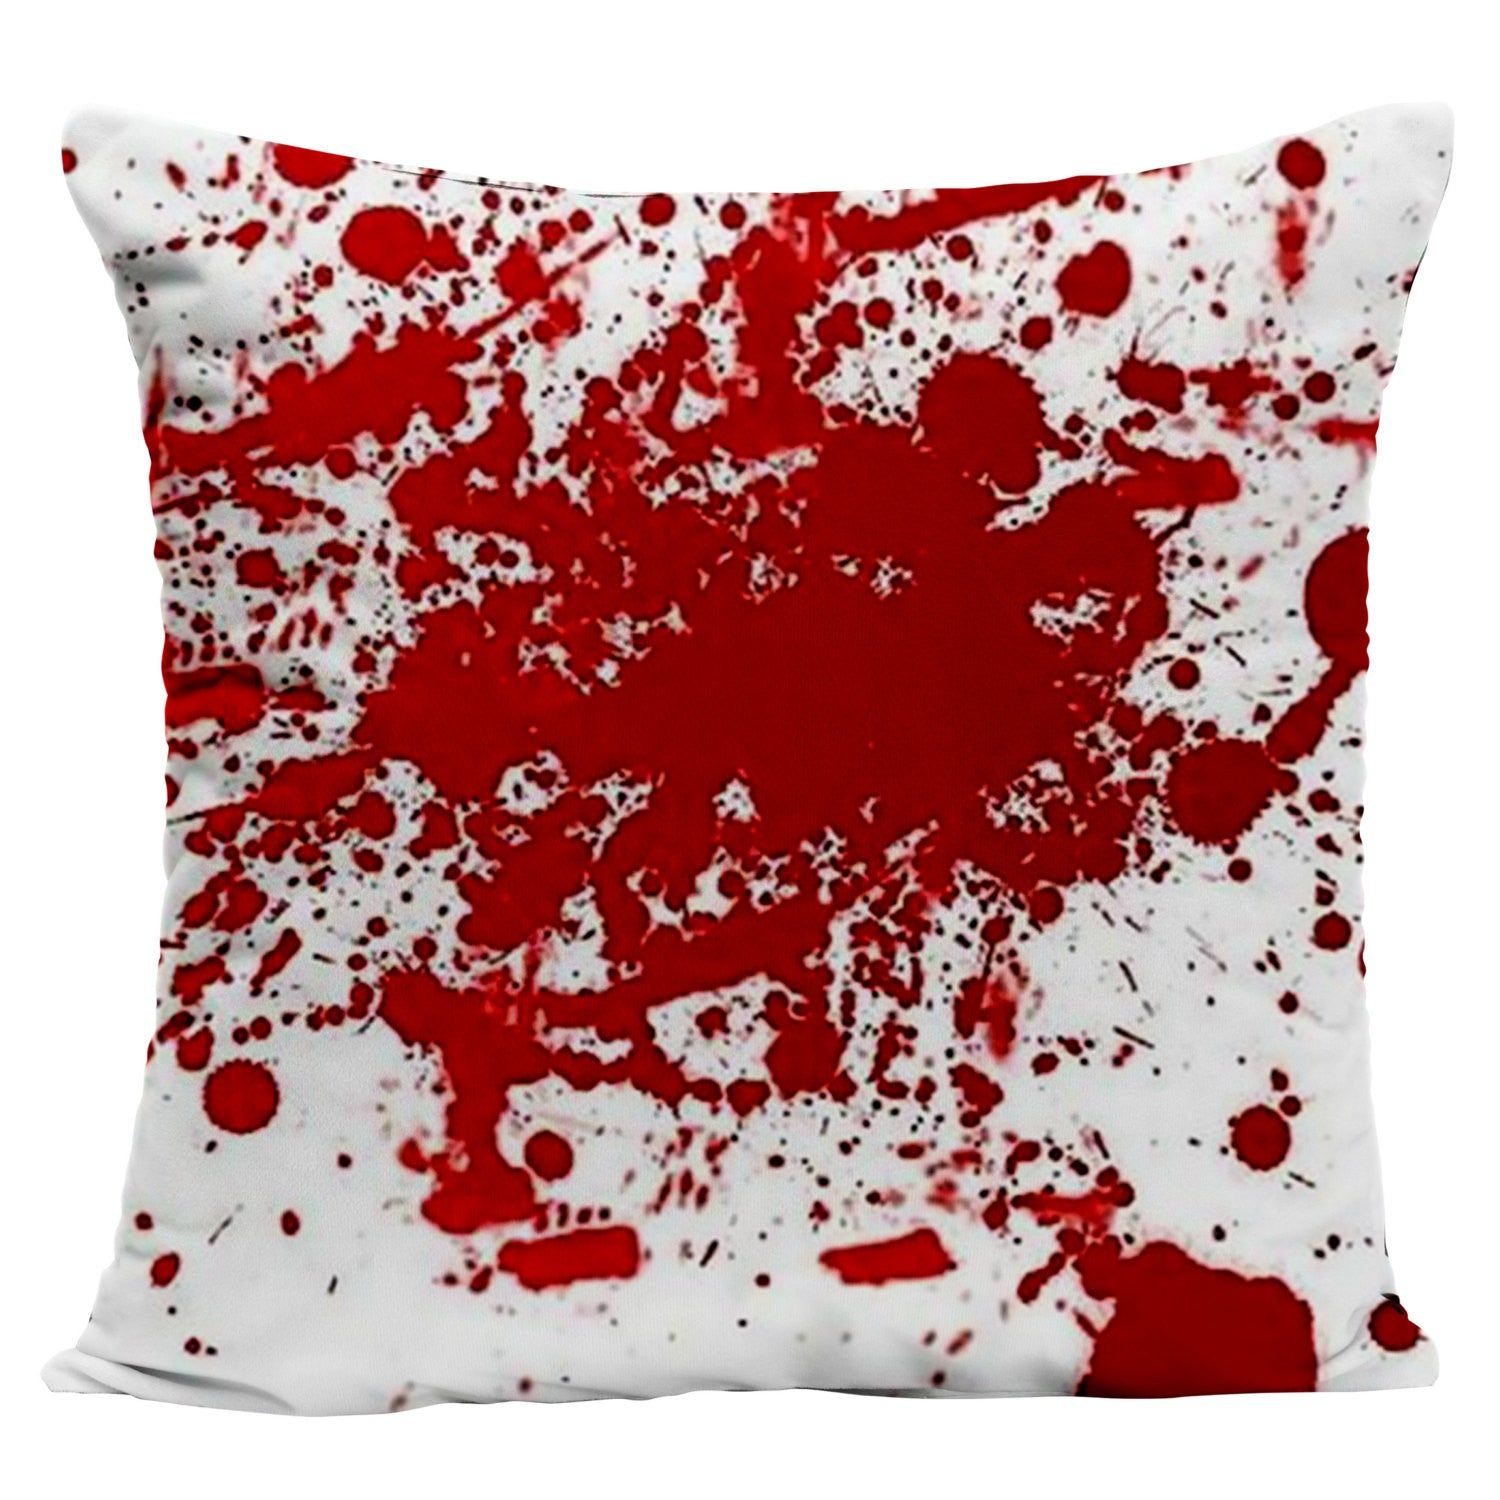 Bloody Pillow - Shweeet